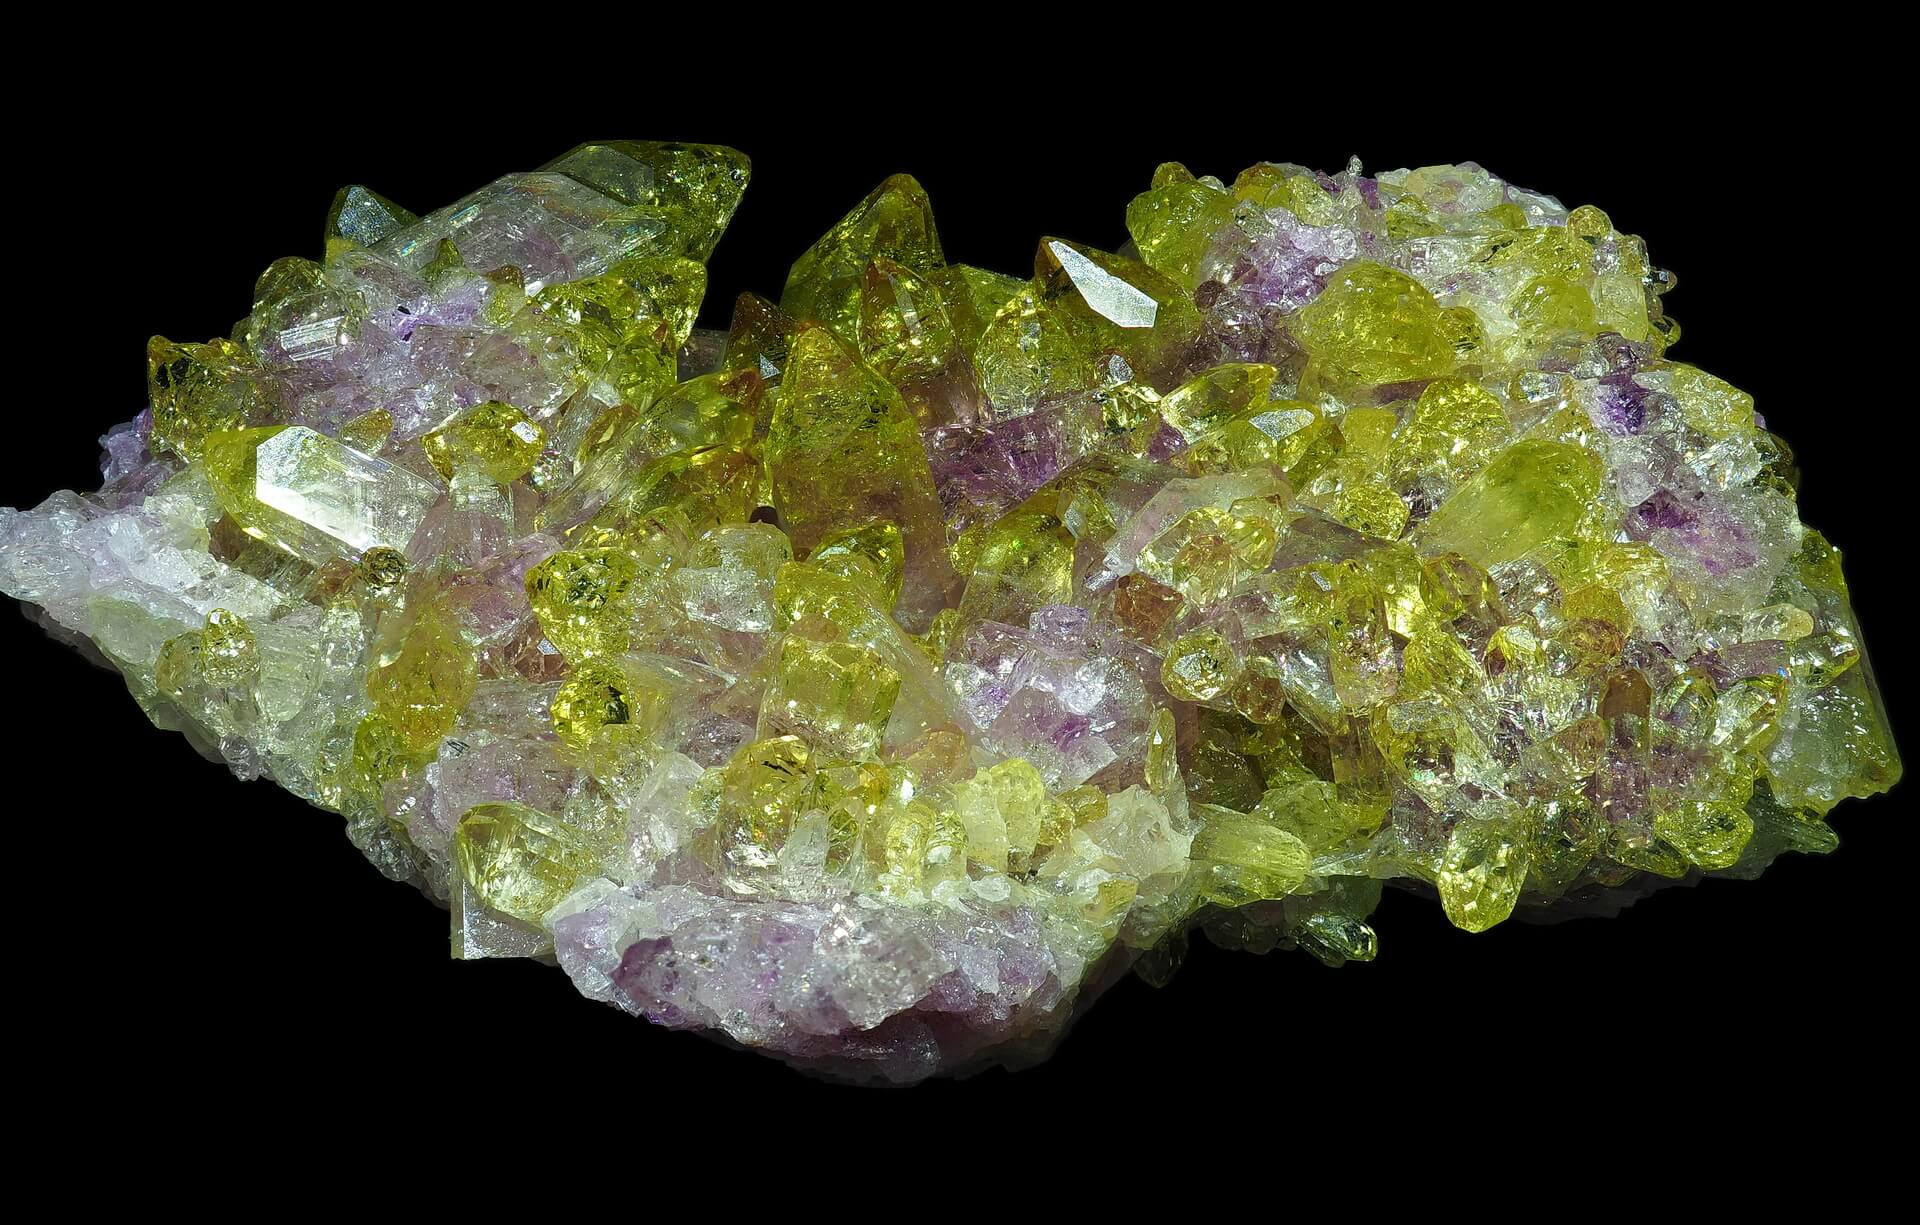 Clear yellow Vesuvianite crystals on a pink Manganoan base.